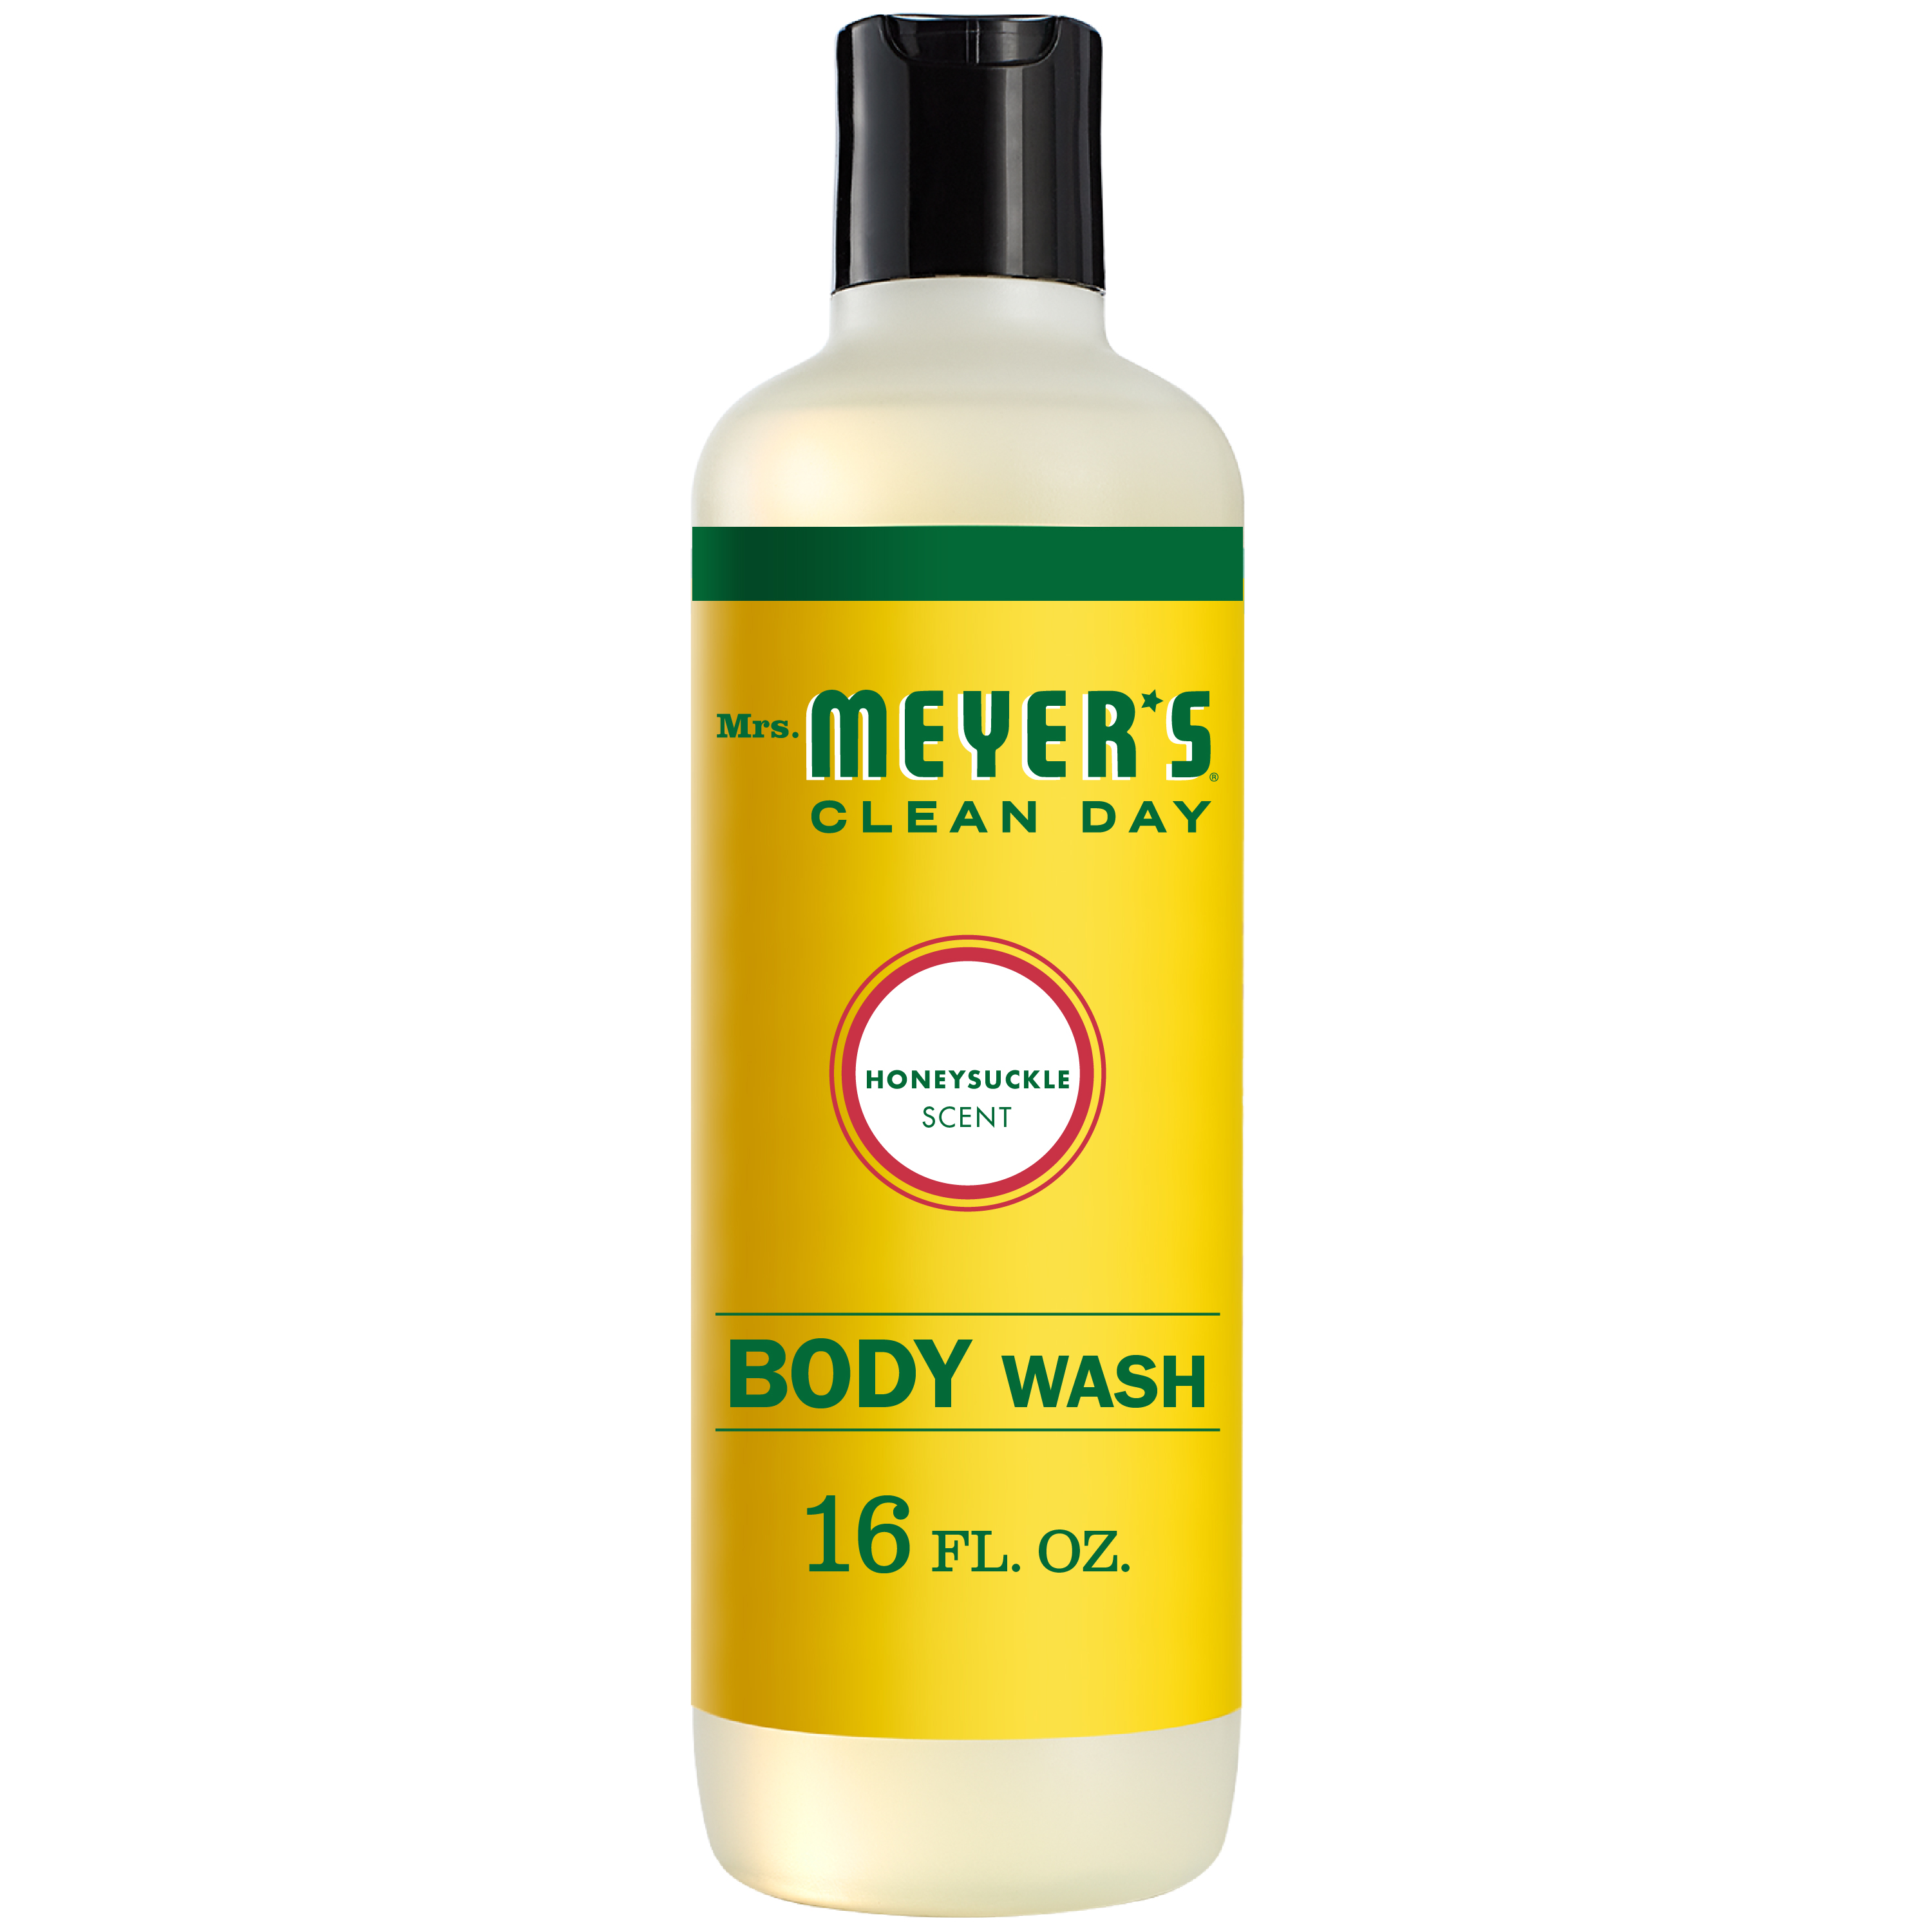 Mrs. Meyer's Clean Day Body Wash, Honeysuckle Scent, 16 ounce bottle